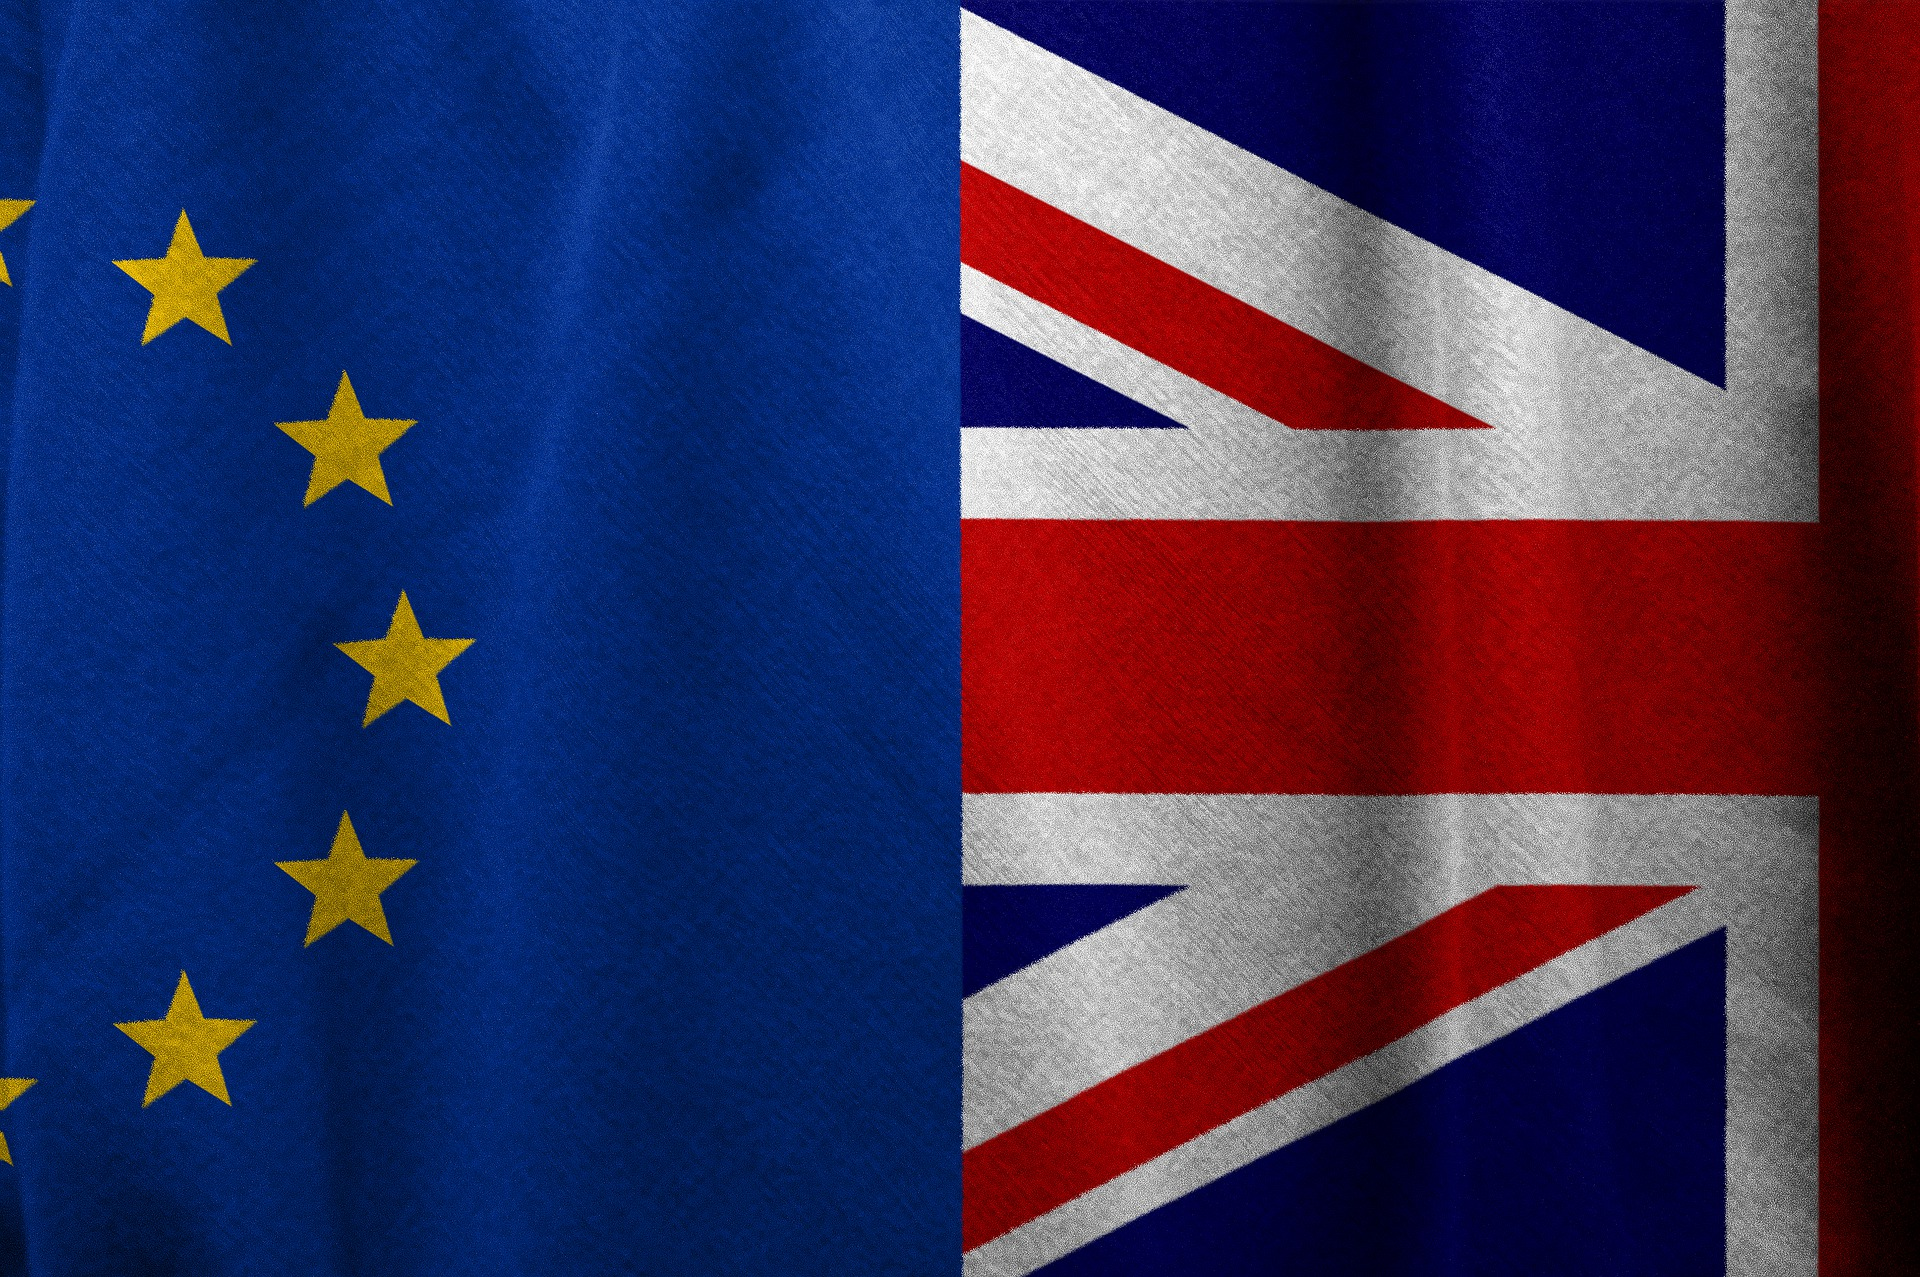 IEA Chief broadly welcomes additional time for exporters to prepare for UK trade controls